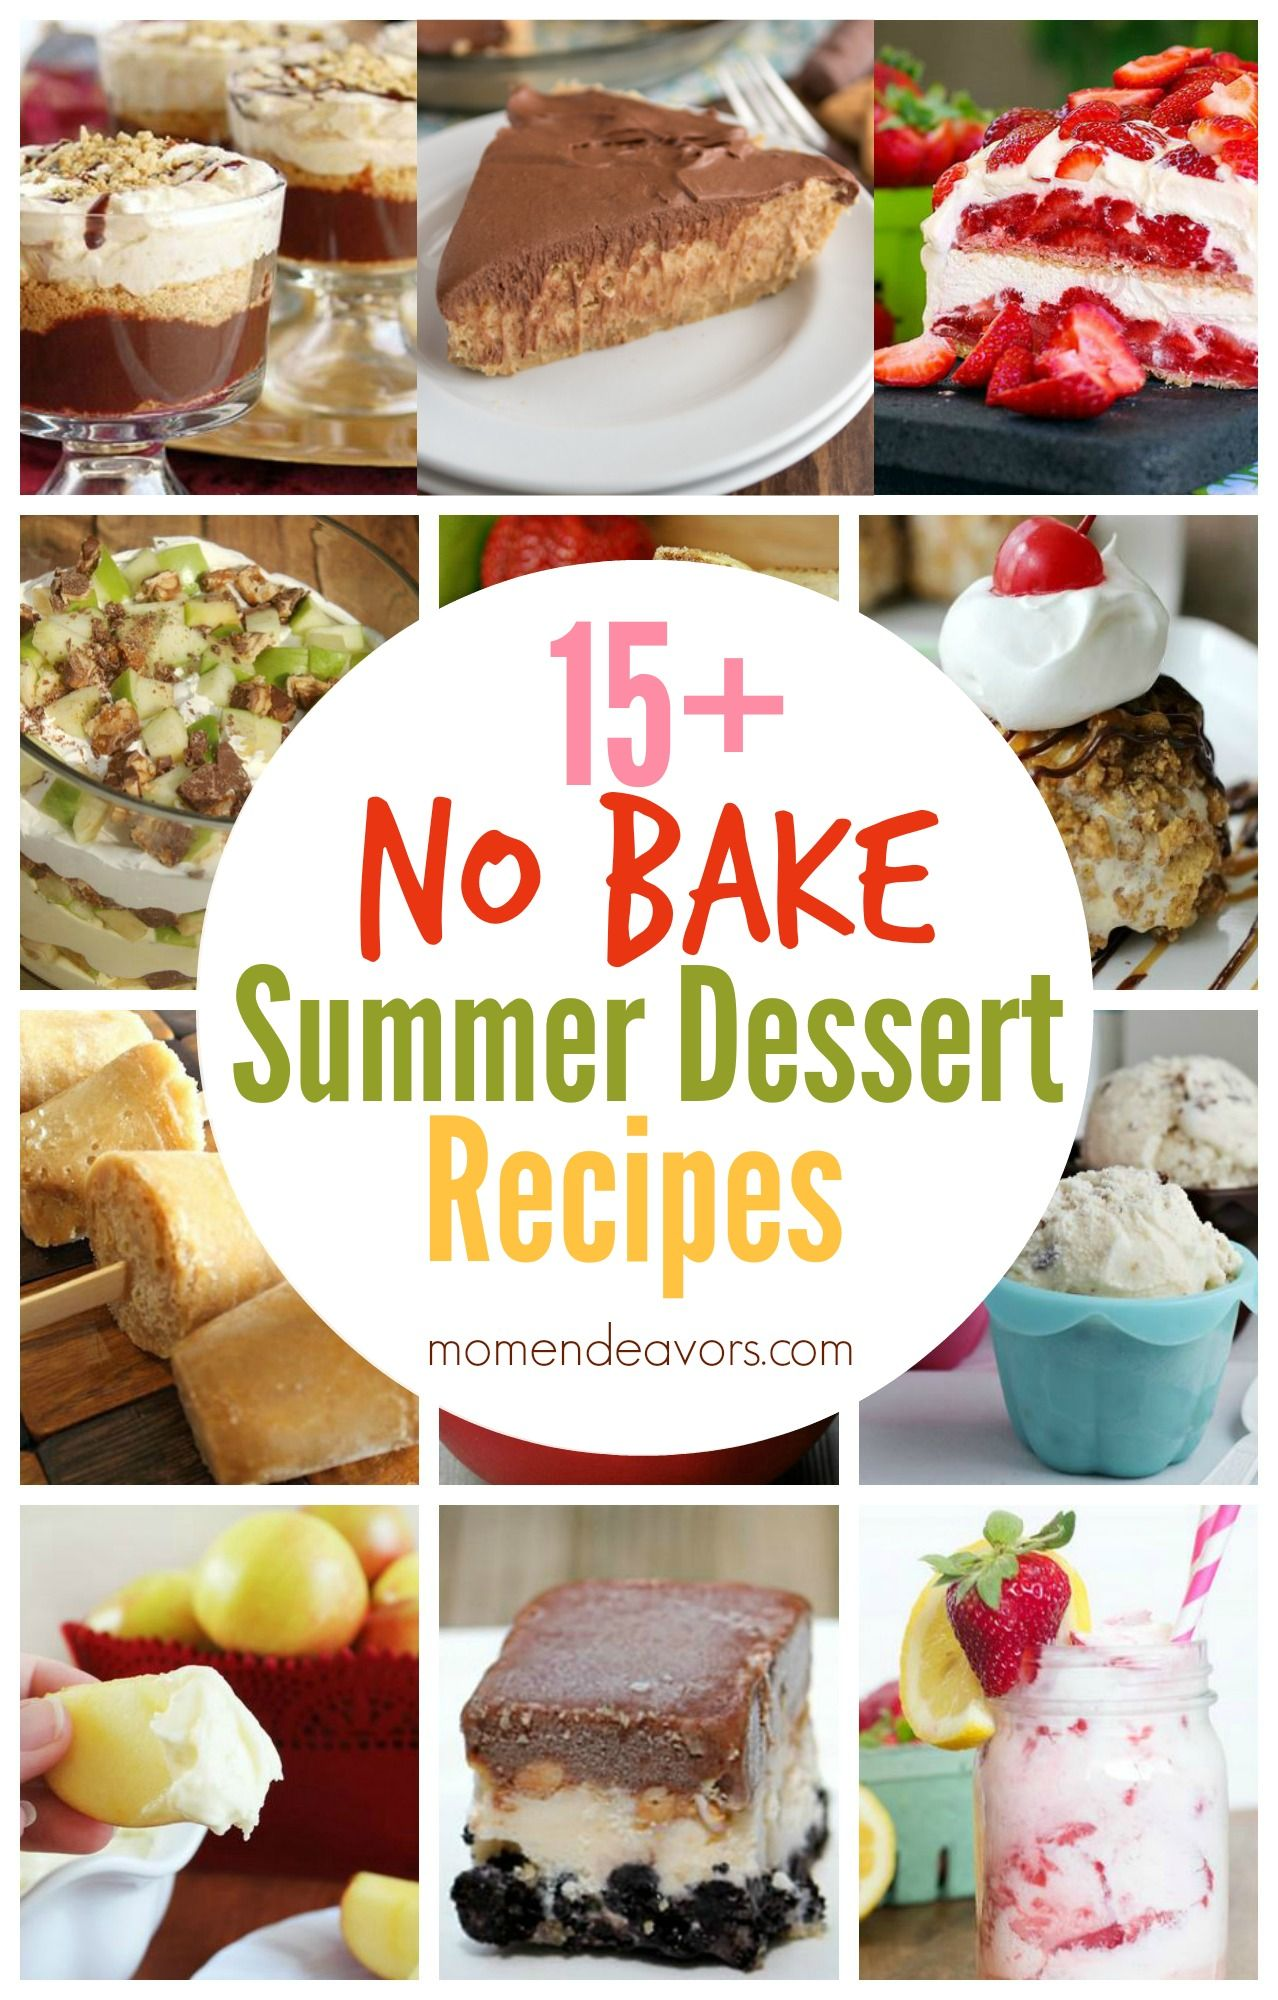 No bake summer dessert recipes foodie best comfort foods no bake summer dessert recipes foodie forumfinder Choice Image